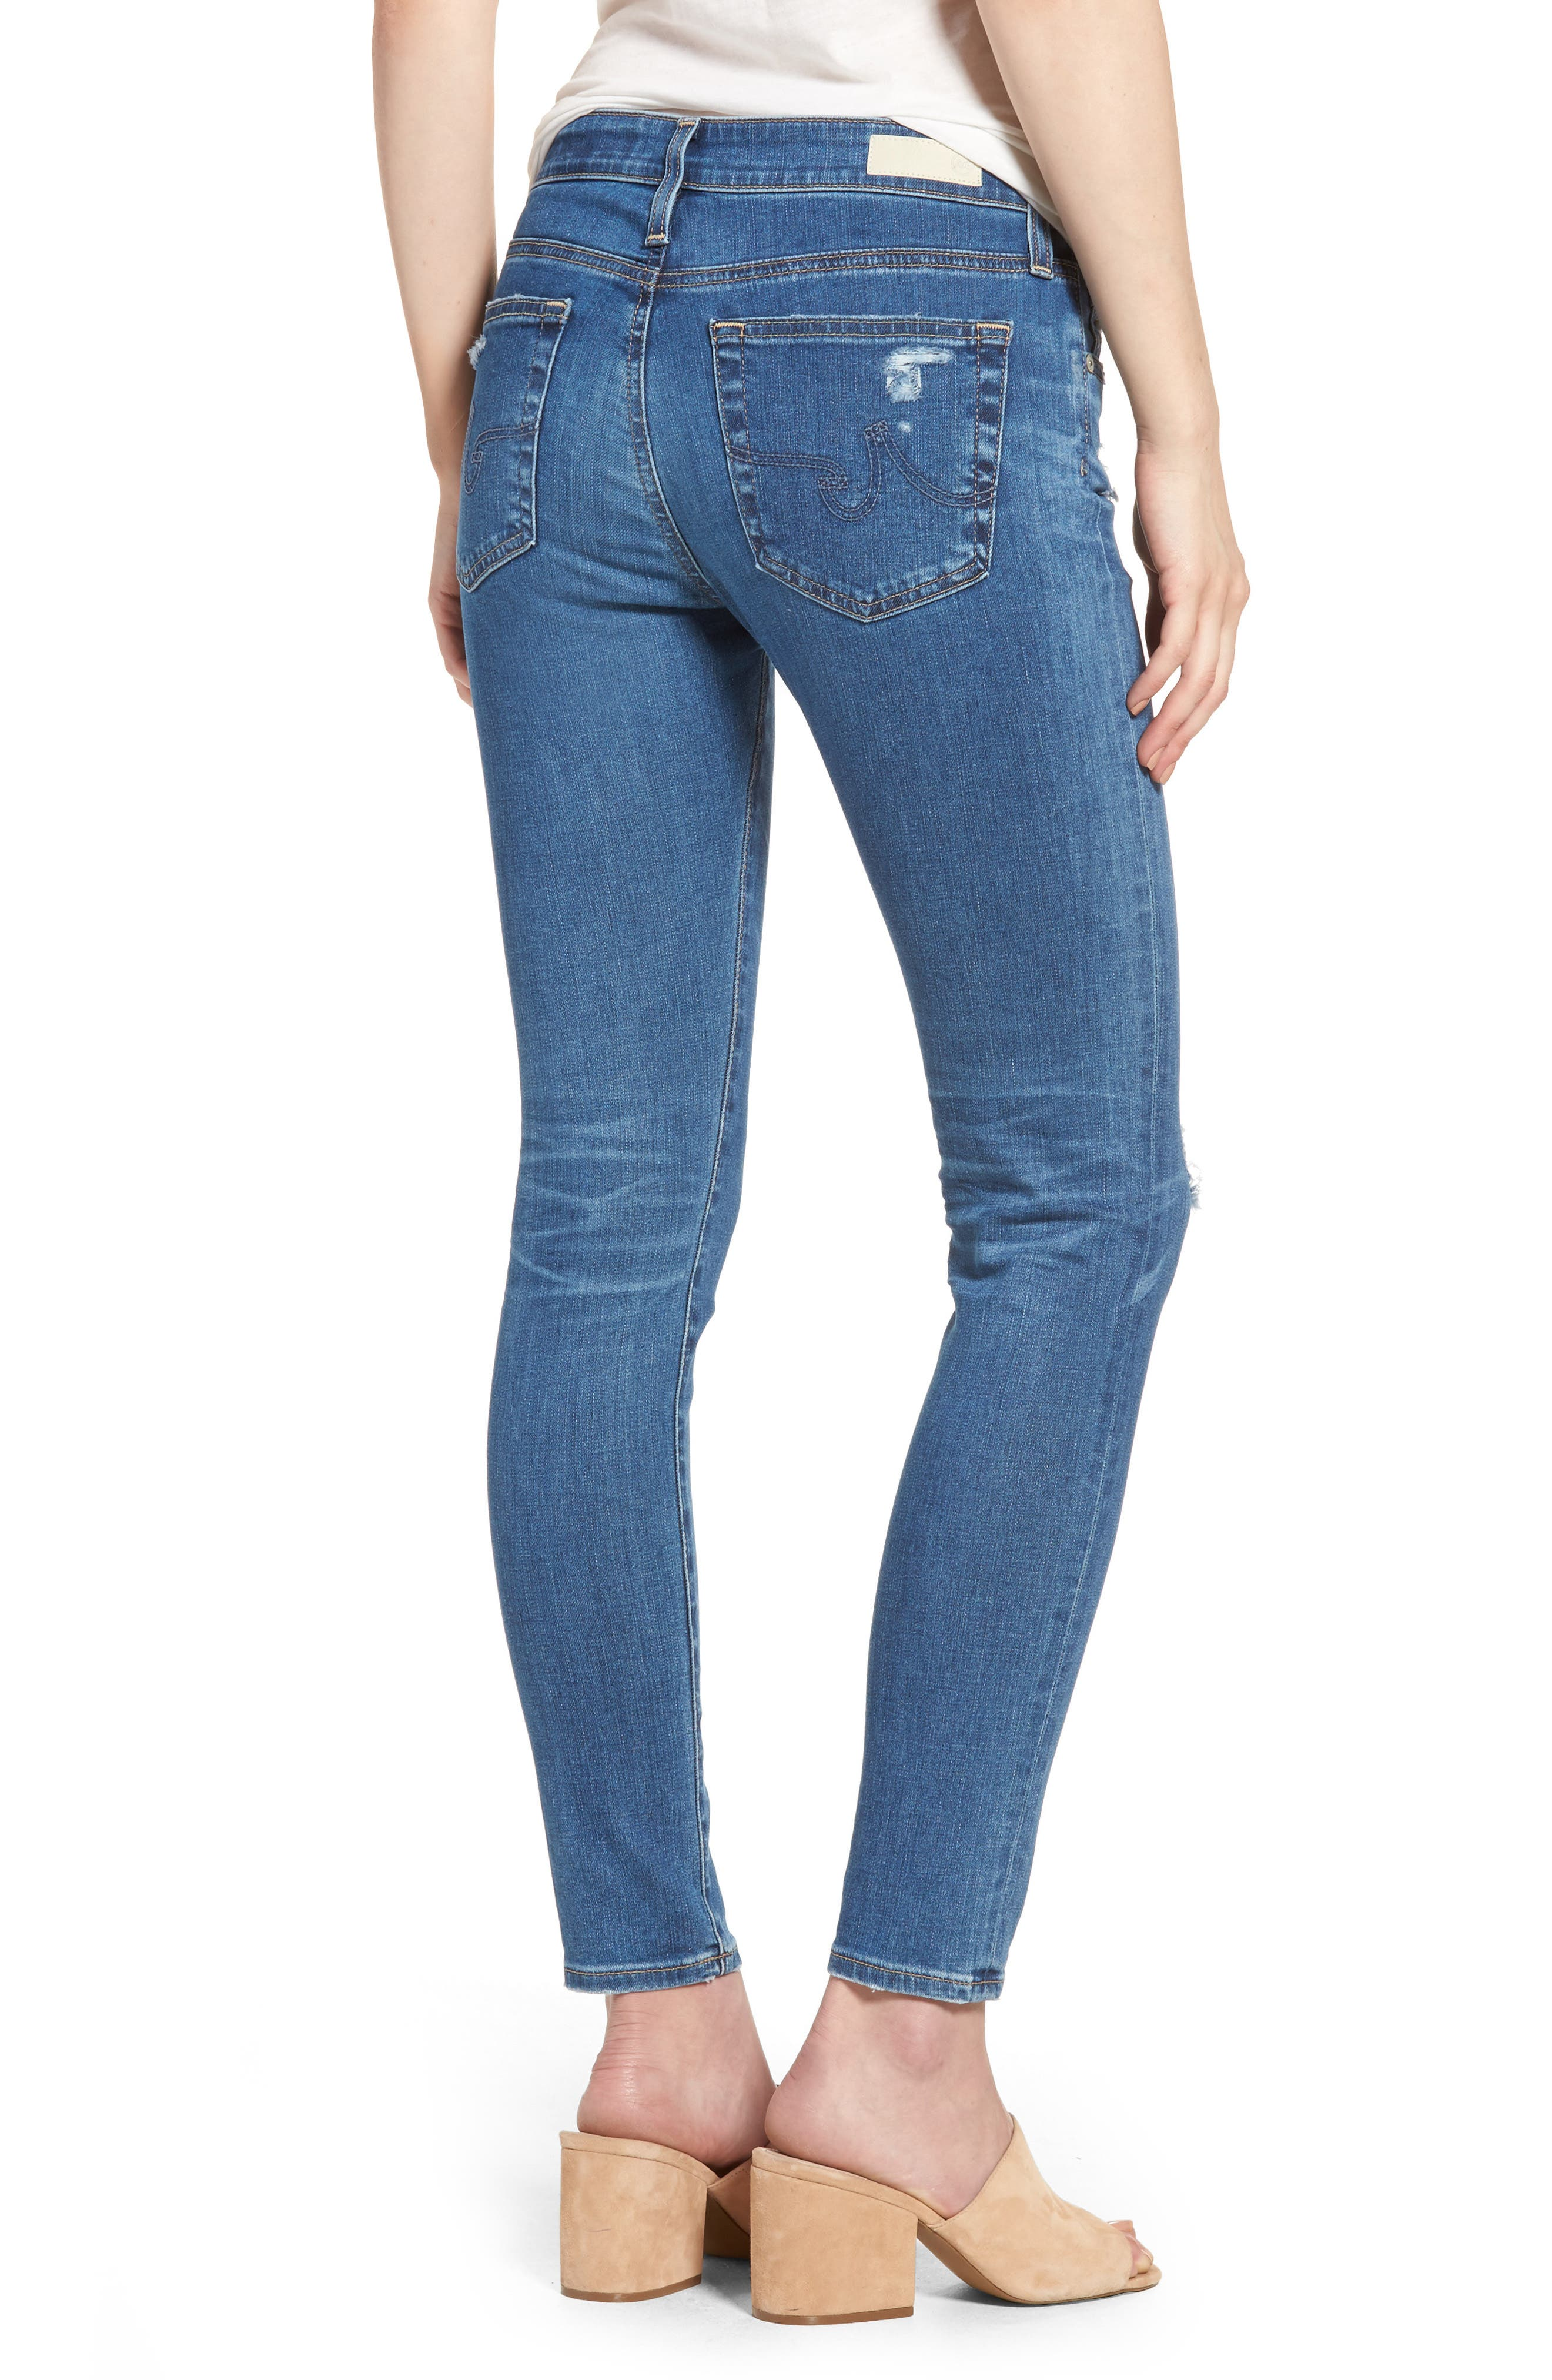 The Farrah High Waist Ankle Skinny Jeans,                             Alternate thumbnail 2, color,                             14 Year Blue Nile Destructed